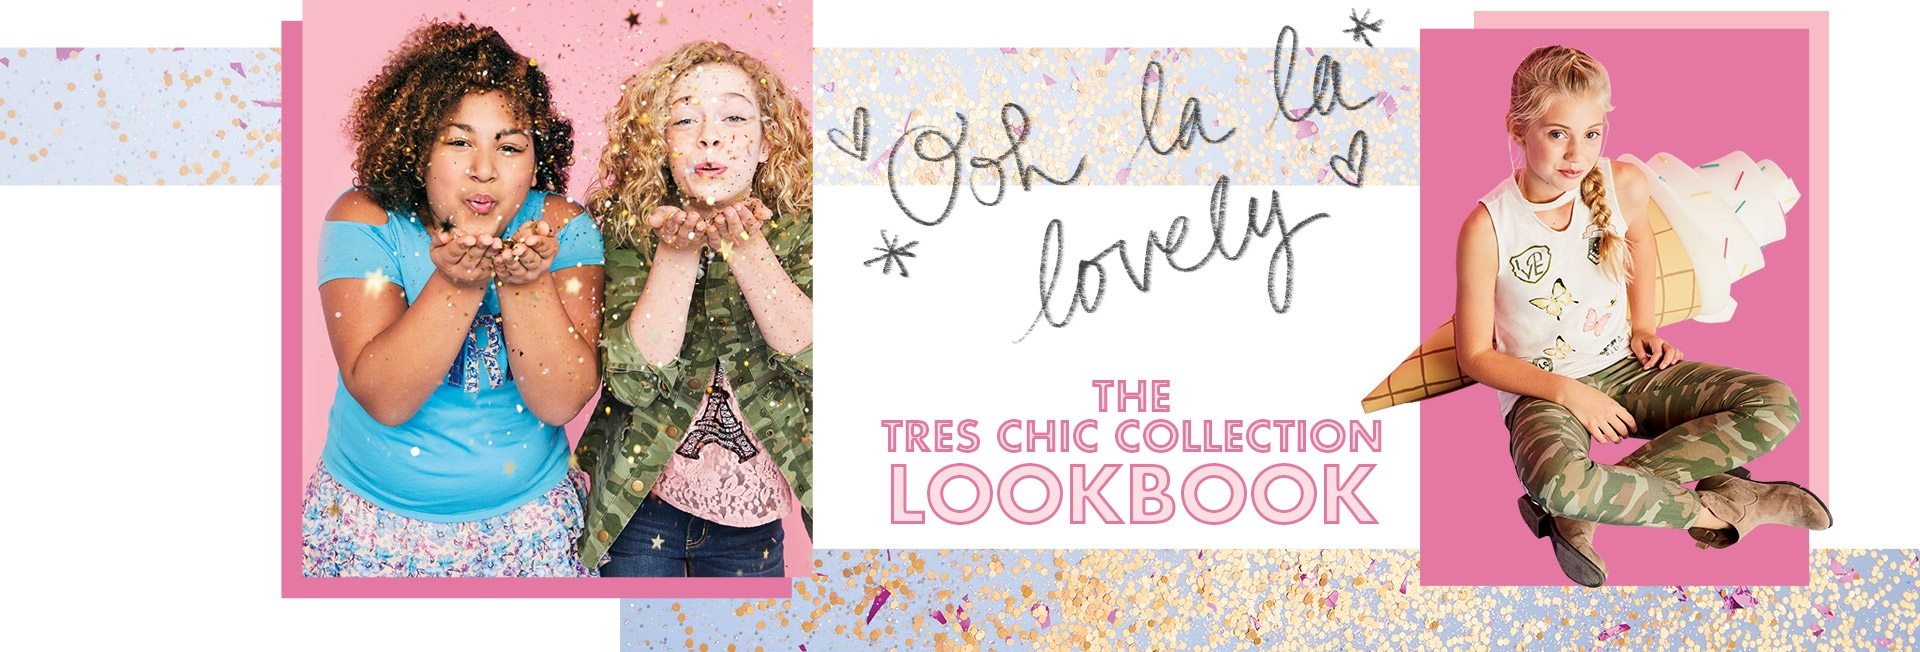 Explore the tre chic lookbook!